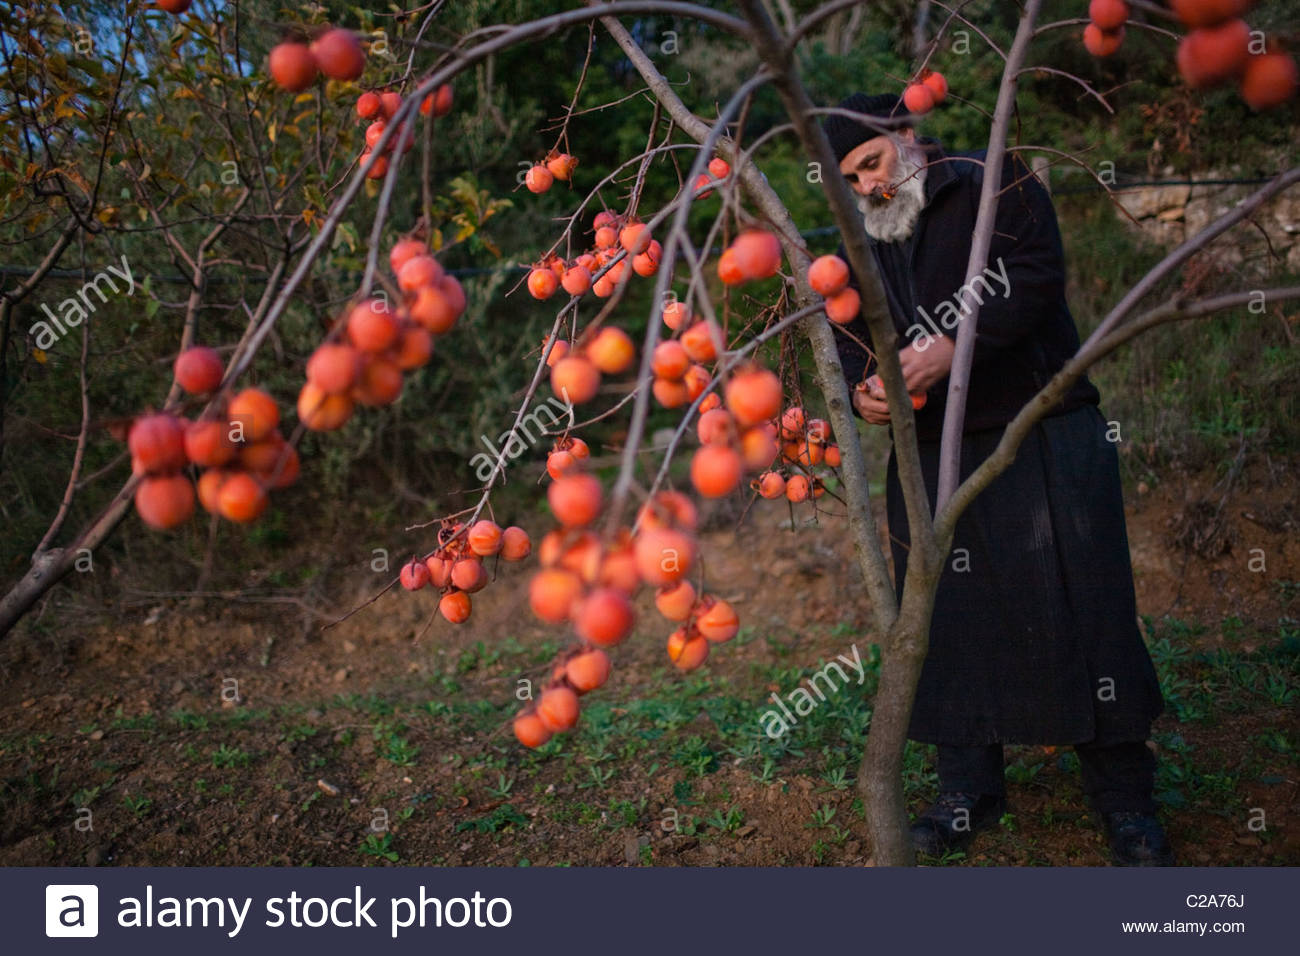 An Eastern Orthodox Christian monk picks persimmons at dusk. - Stock Image